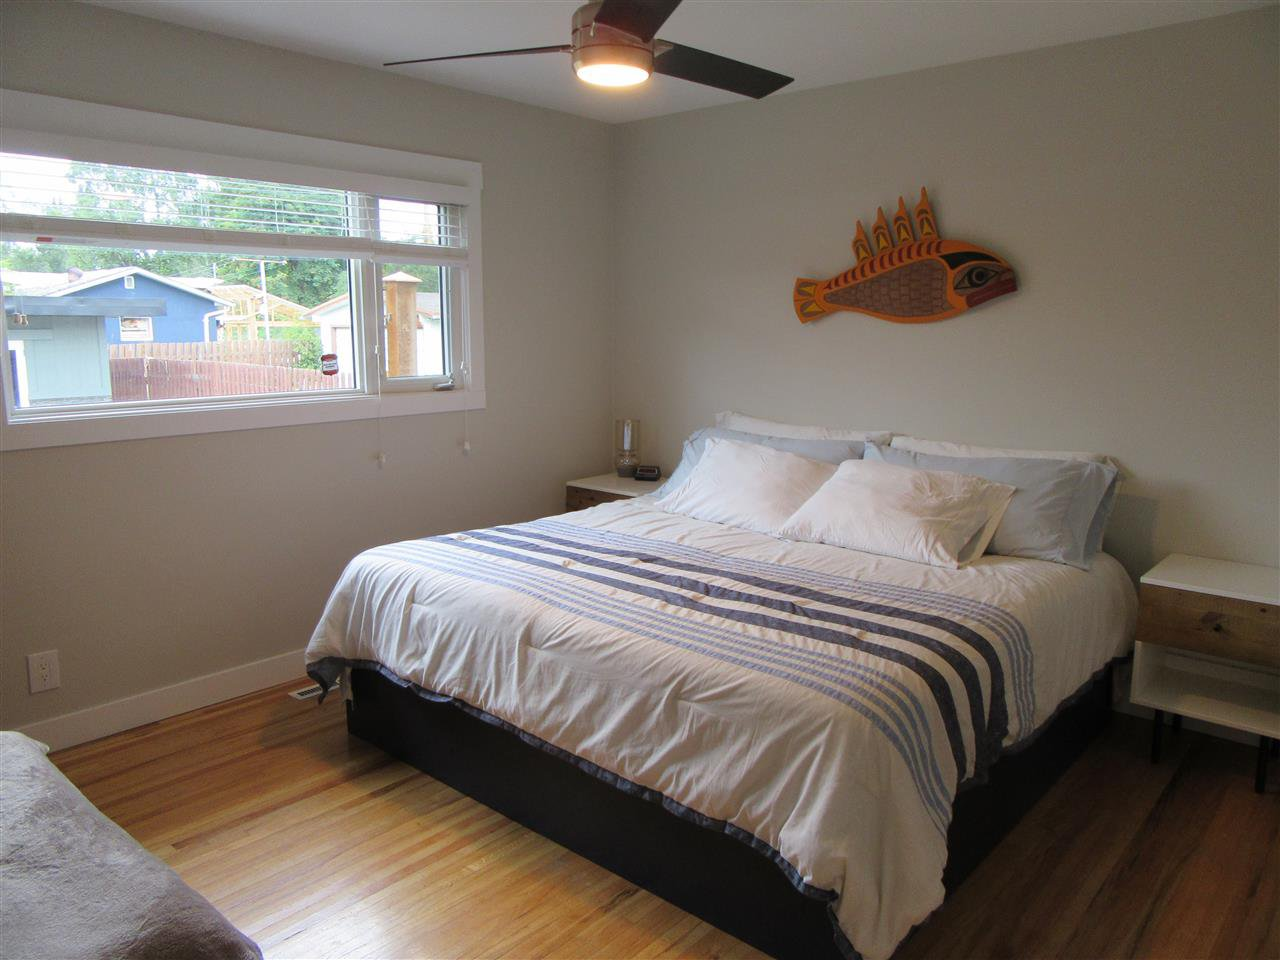 """Photo 31: Photos: 121 FREEMAN Street in Prince George: Nechako View House for sale in """"NECHAKO"""" (PG City Central (Zone 72))  : MLS®# R2493268"""